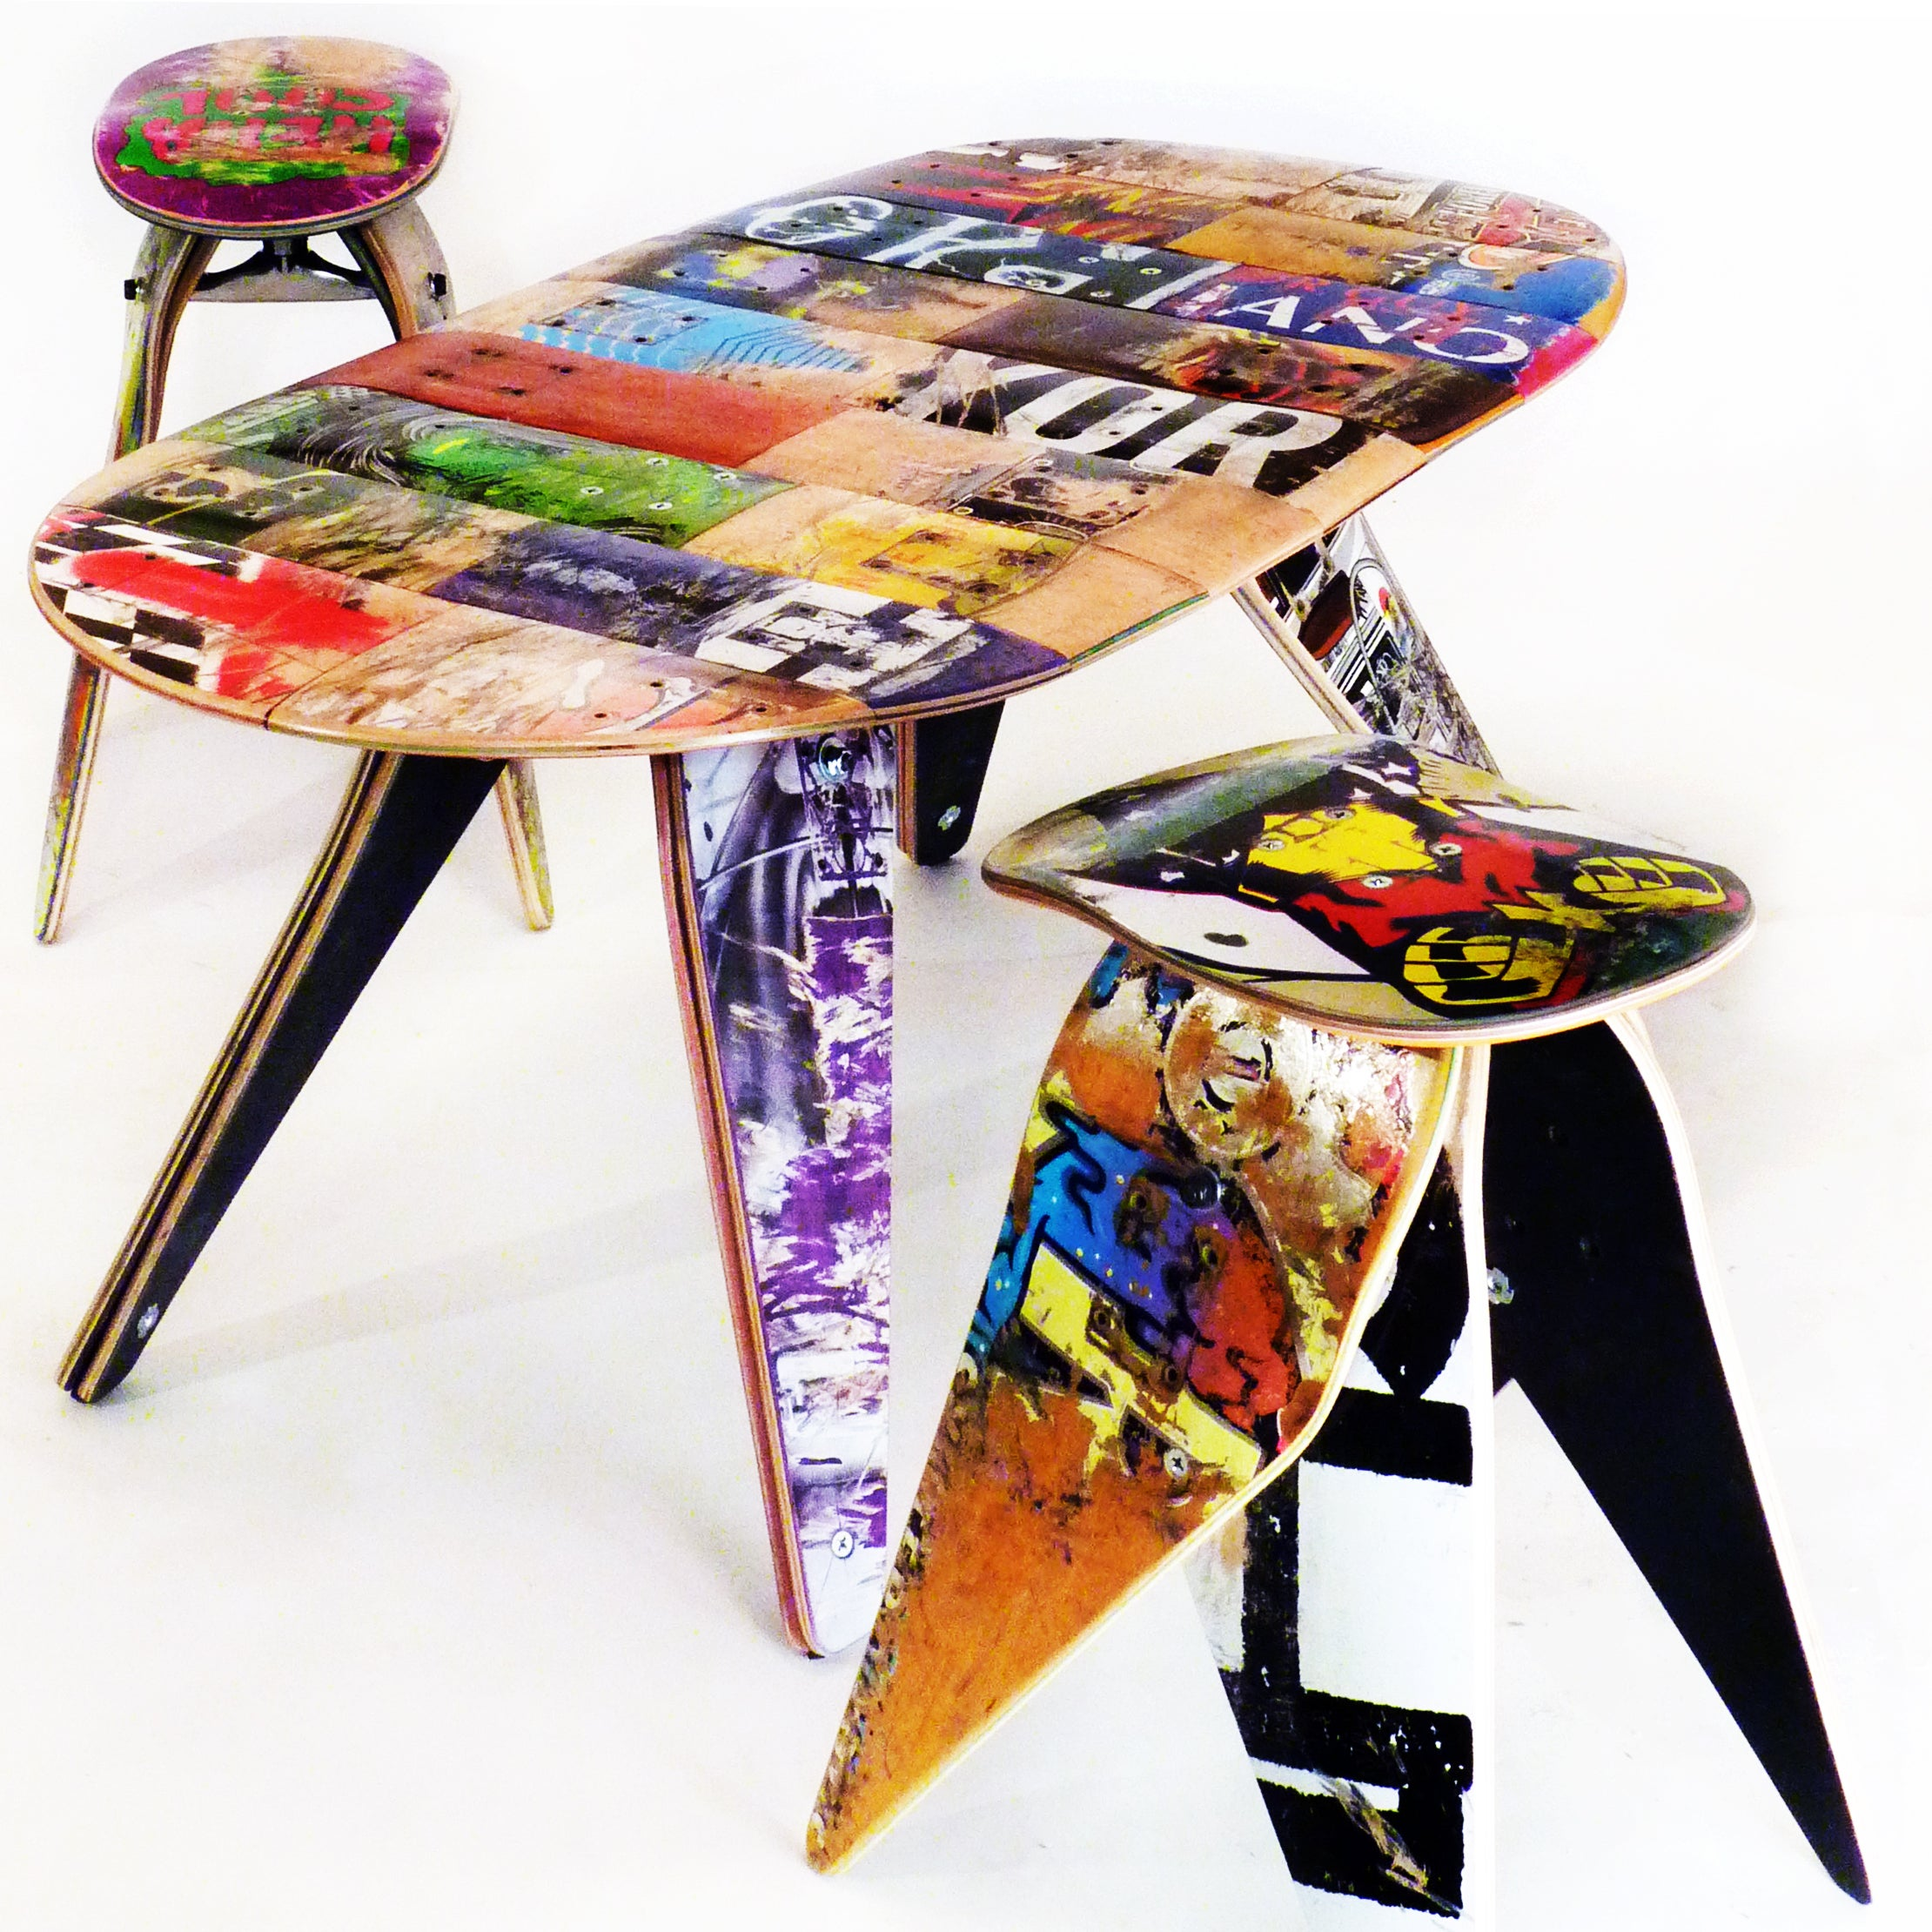 Skateboard Table Recycled Skateboard School Bench Recycled